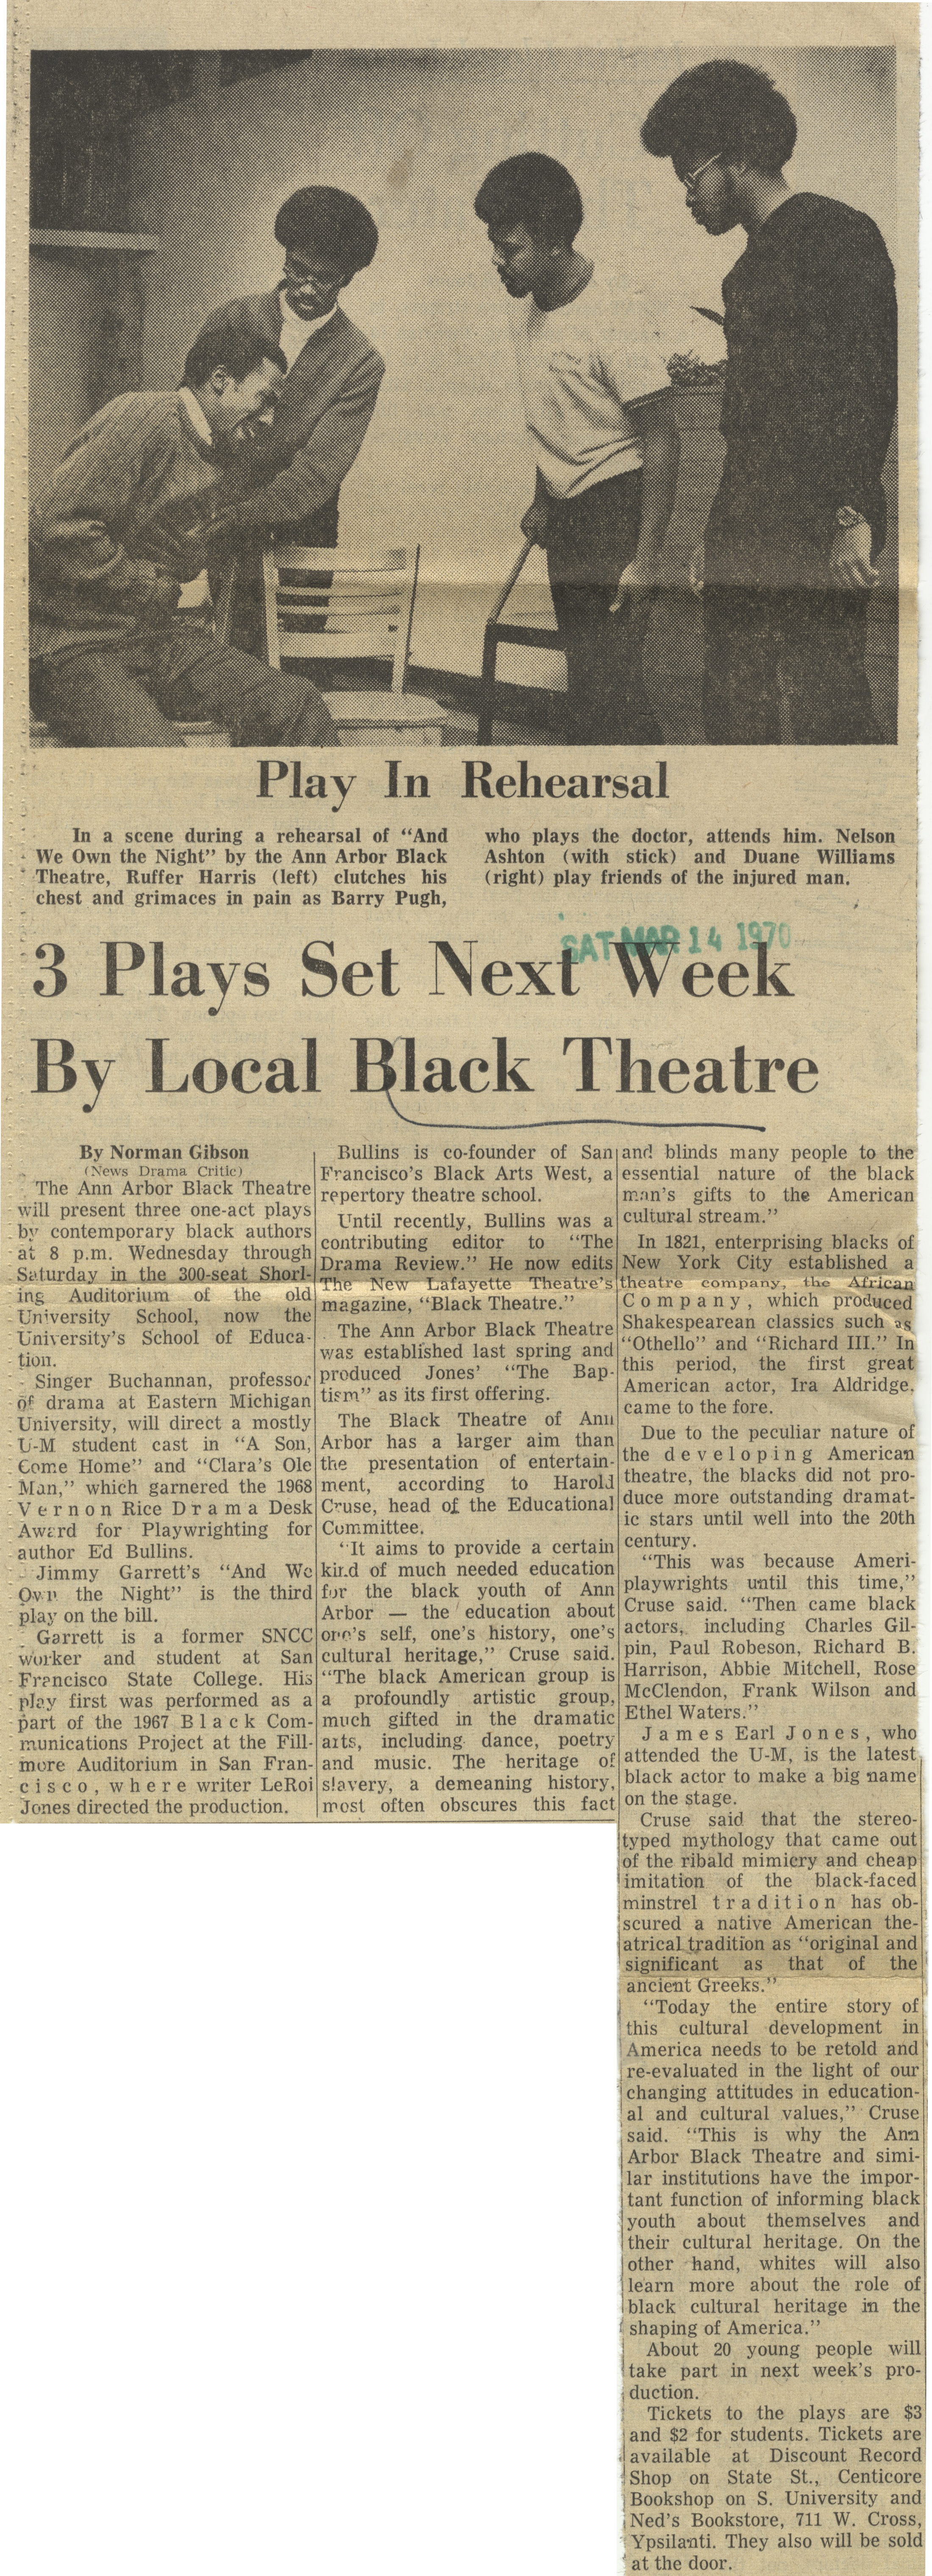 3 Plays Set Next Week By Local Black Theatre image